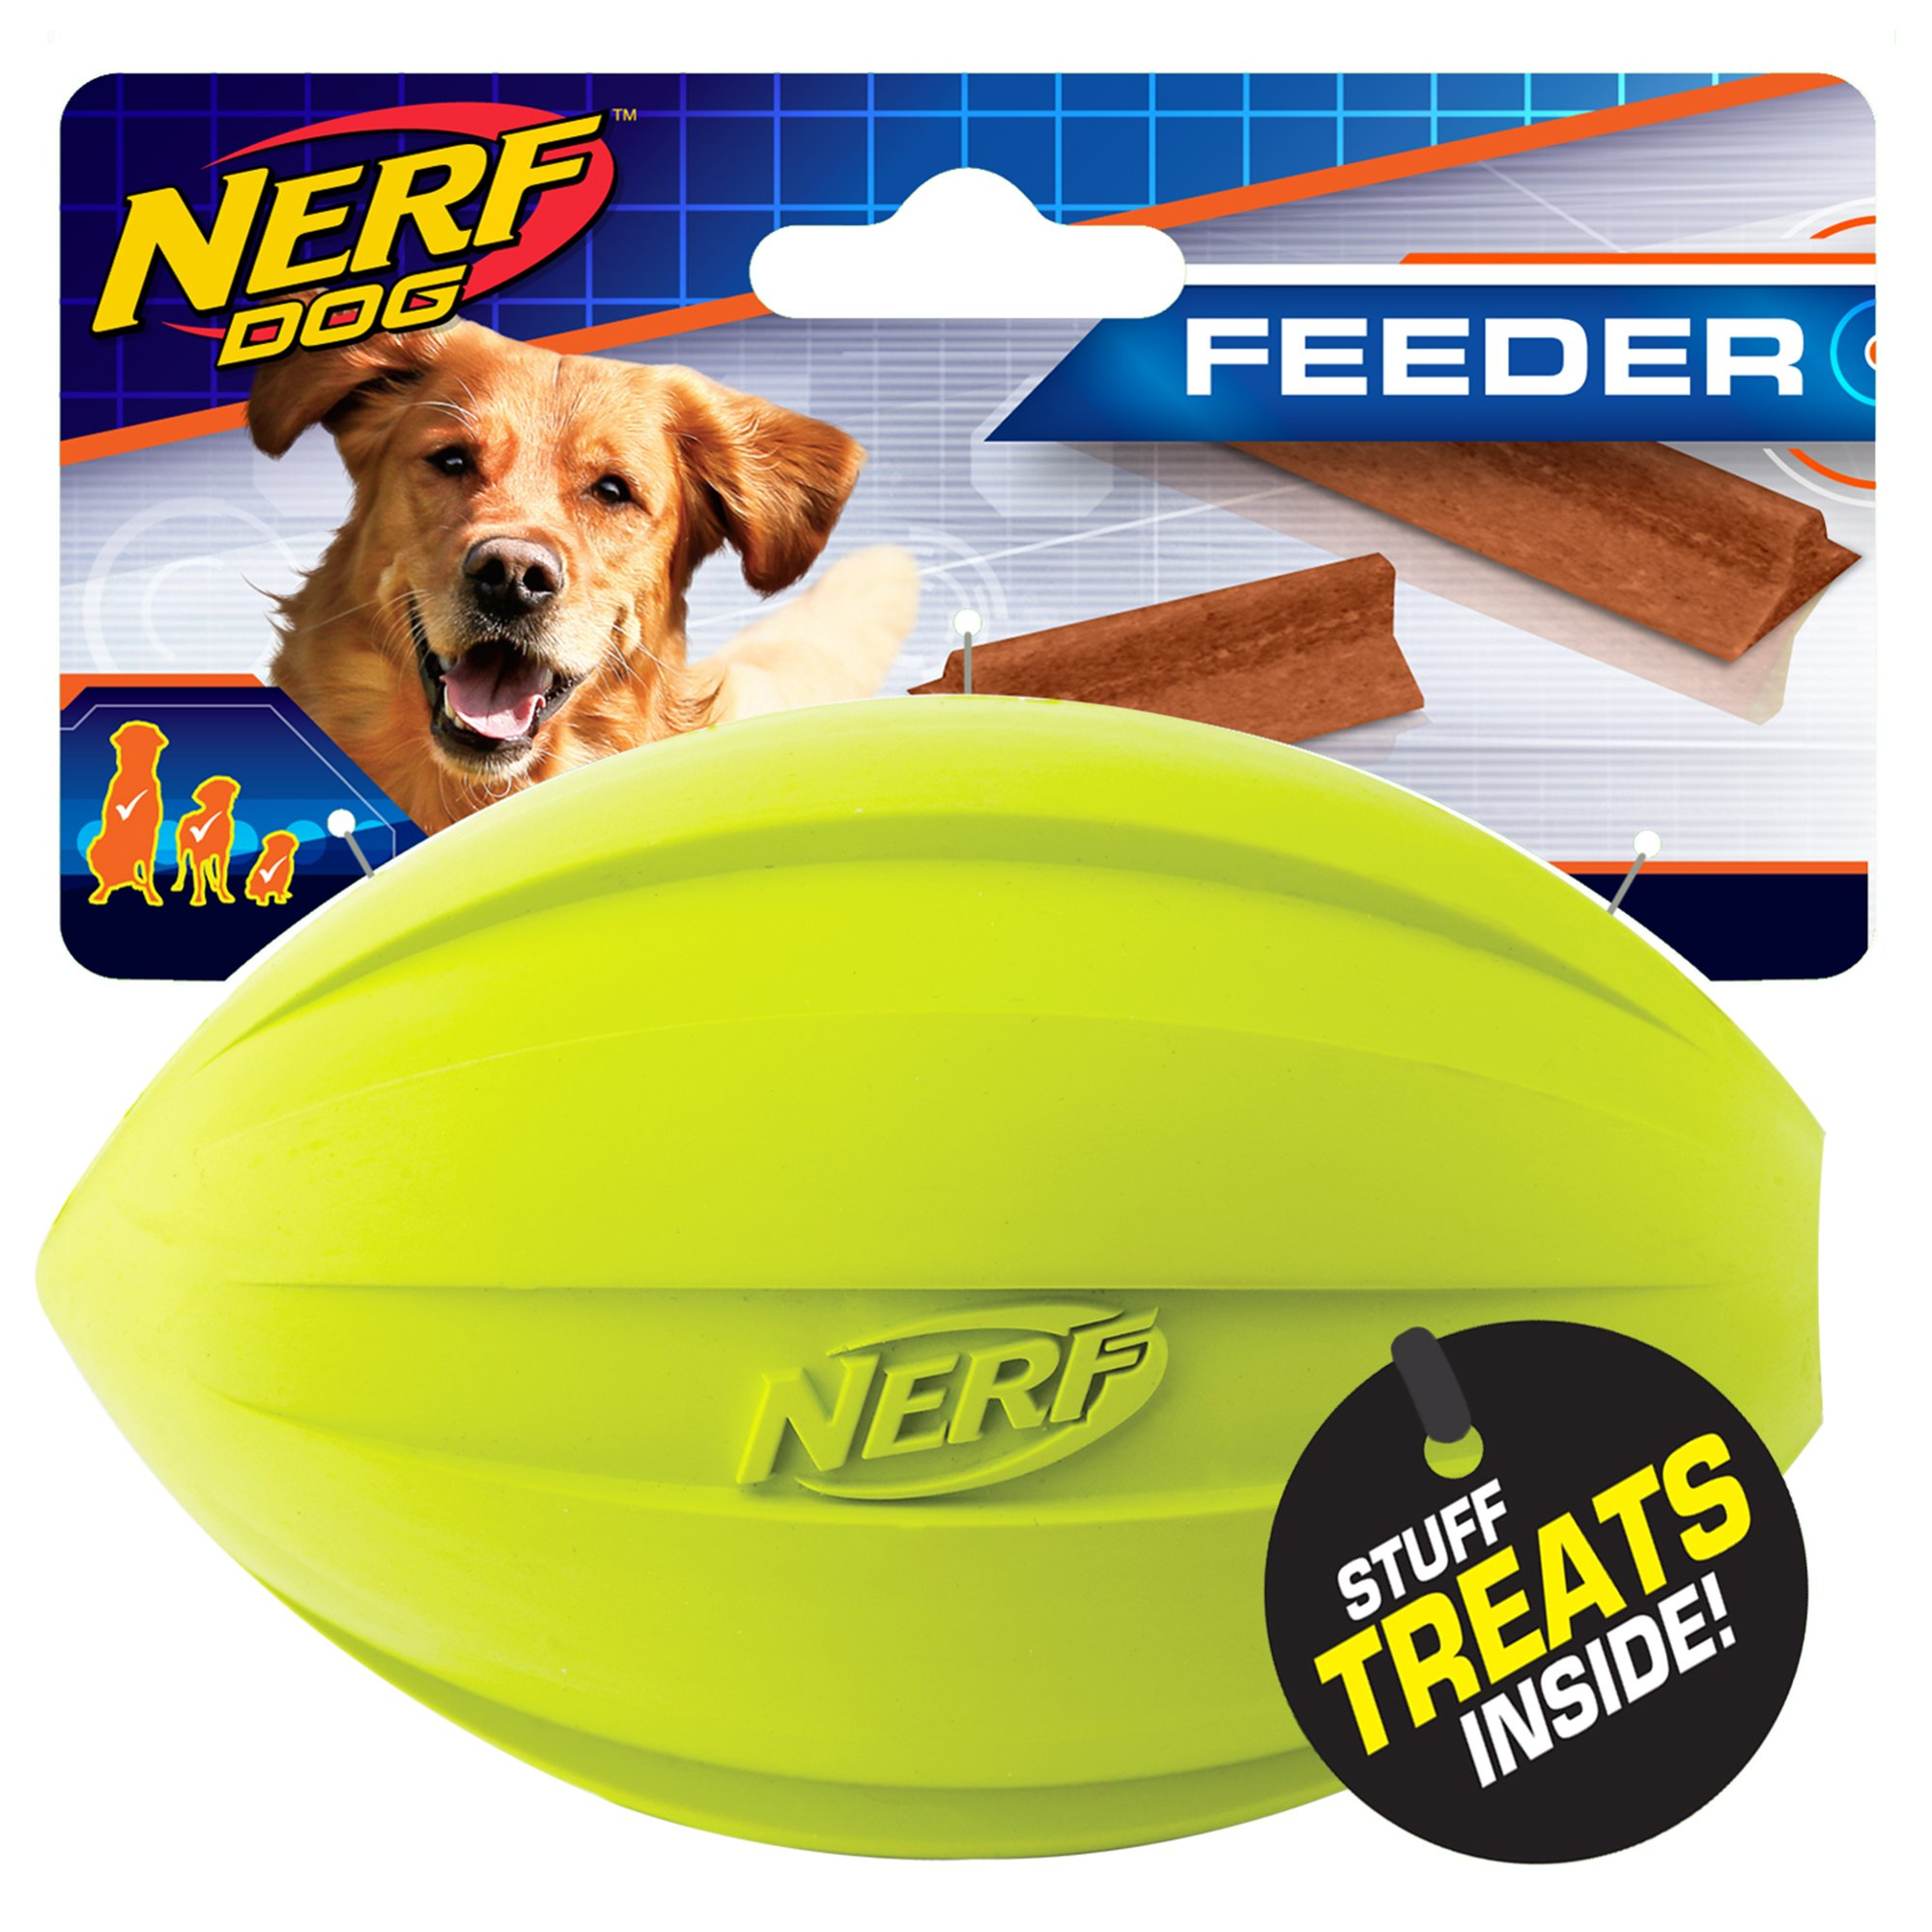 Nerf Dog Medium to Large Treat Feeder Football (2-Pack) Green and Blue Rubber Dog Toy